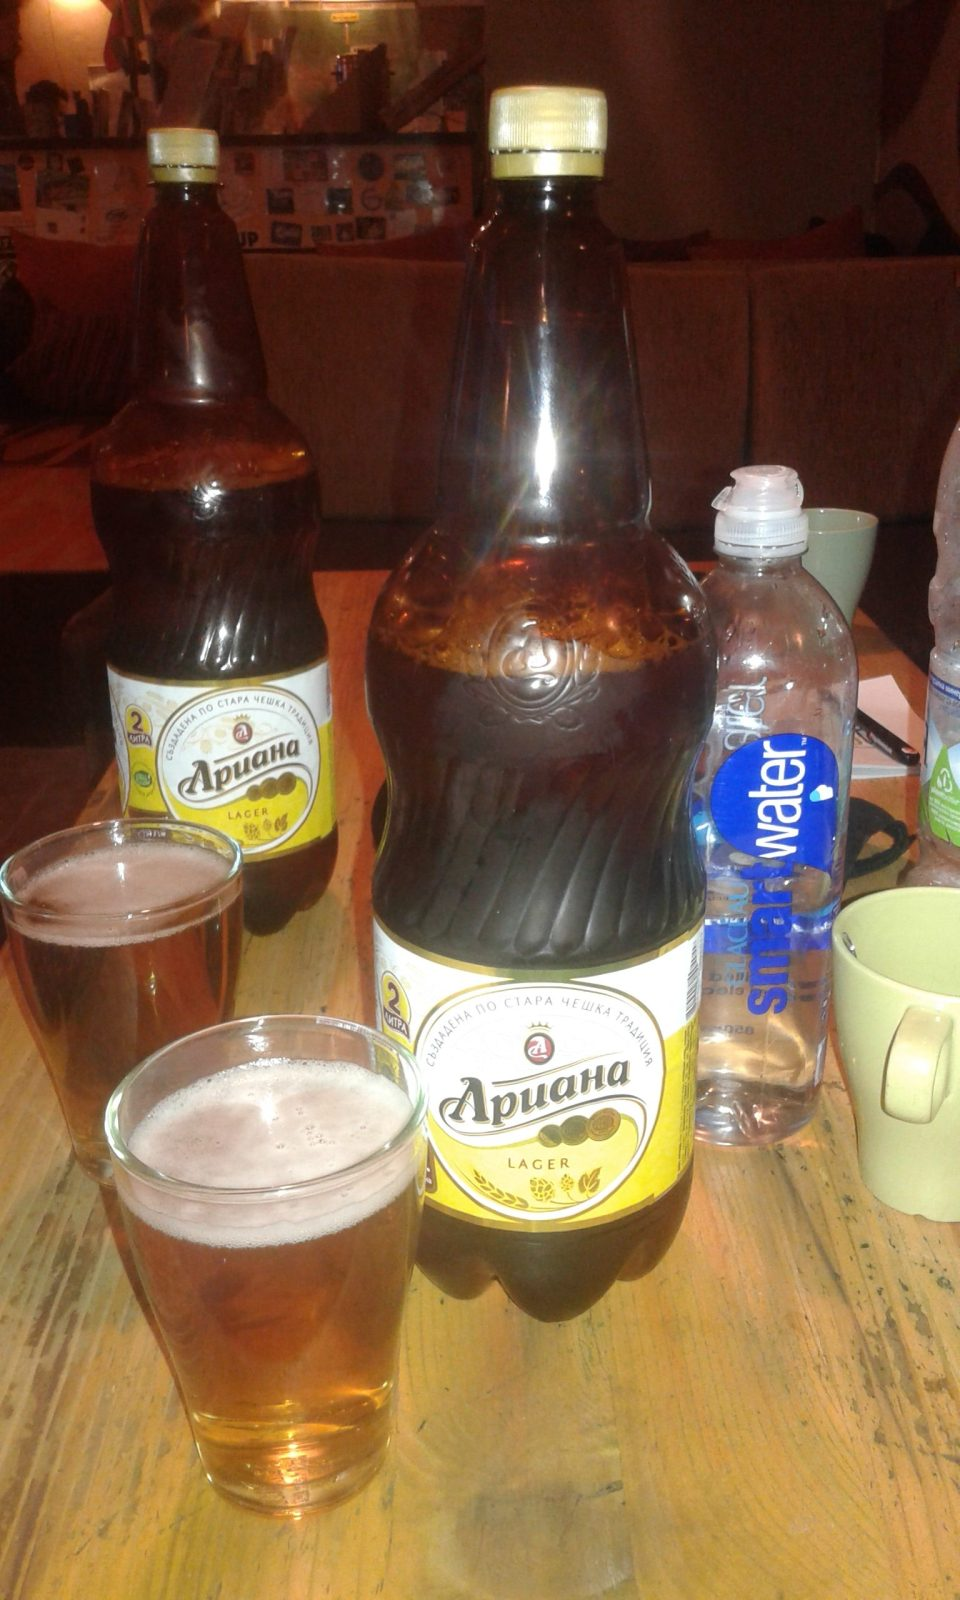 backpacking tips - watch how much you drink! Bottles of beer in bulgaria